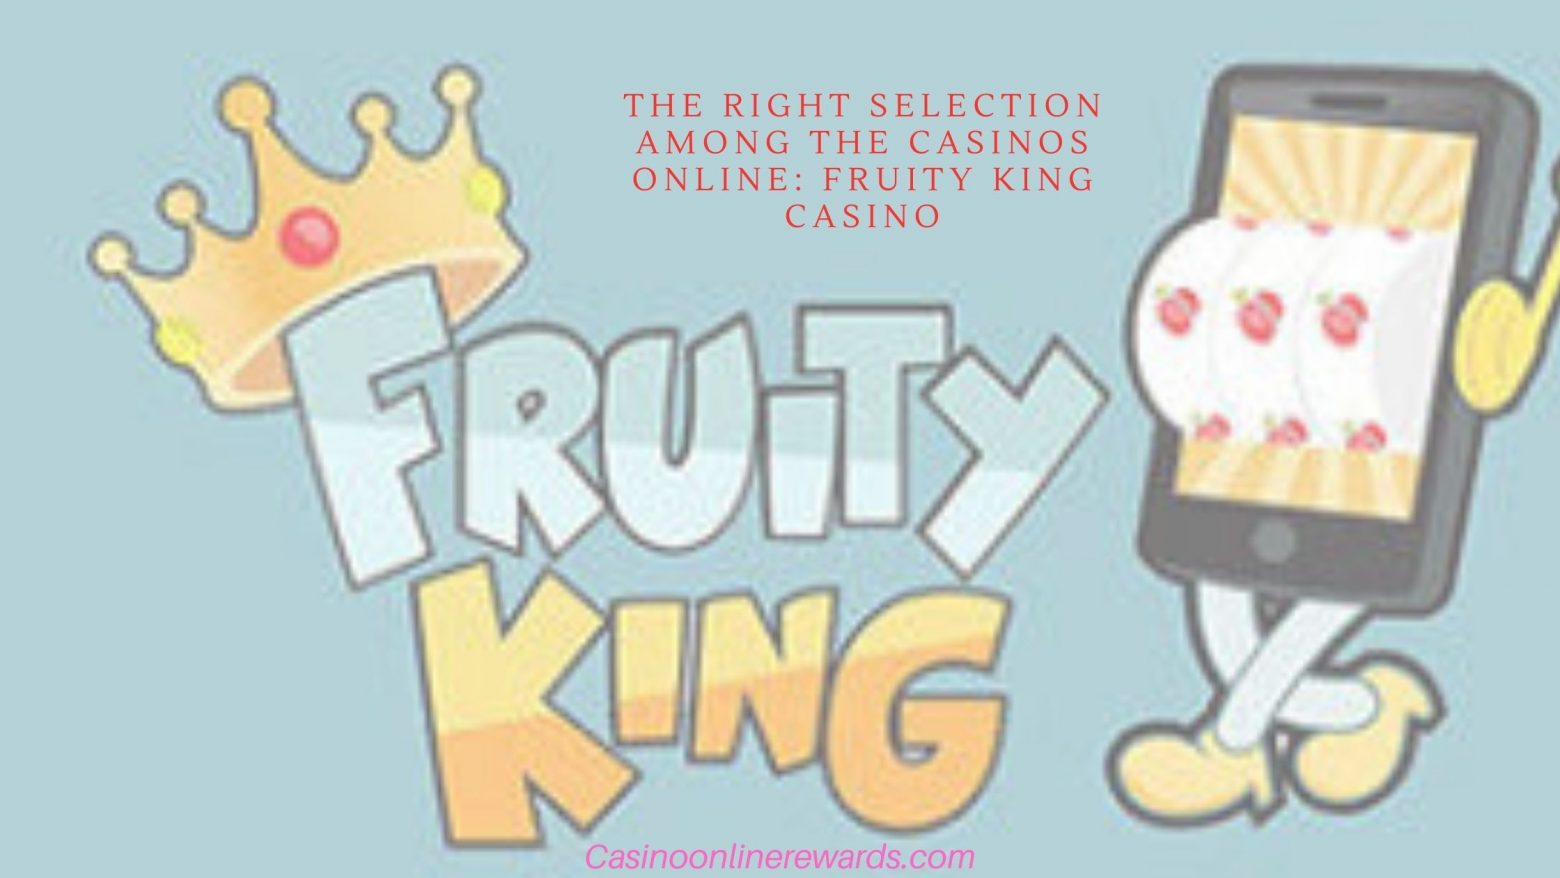 The Right Selection among the Casinos Online FRUITY KING Casino